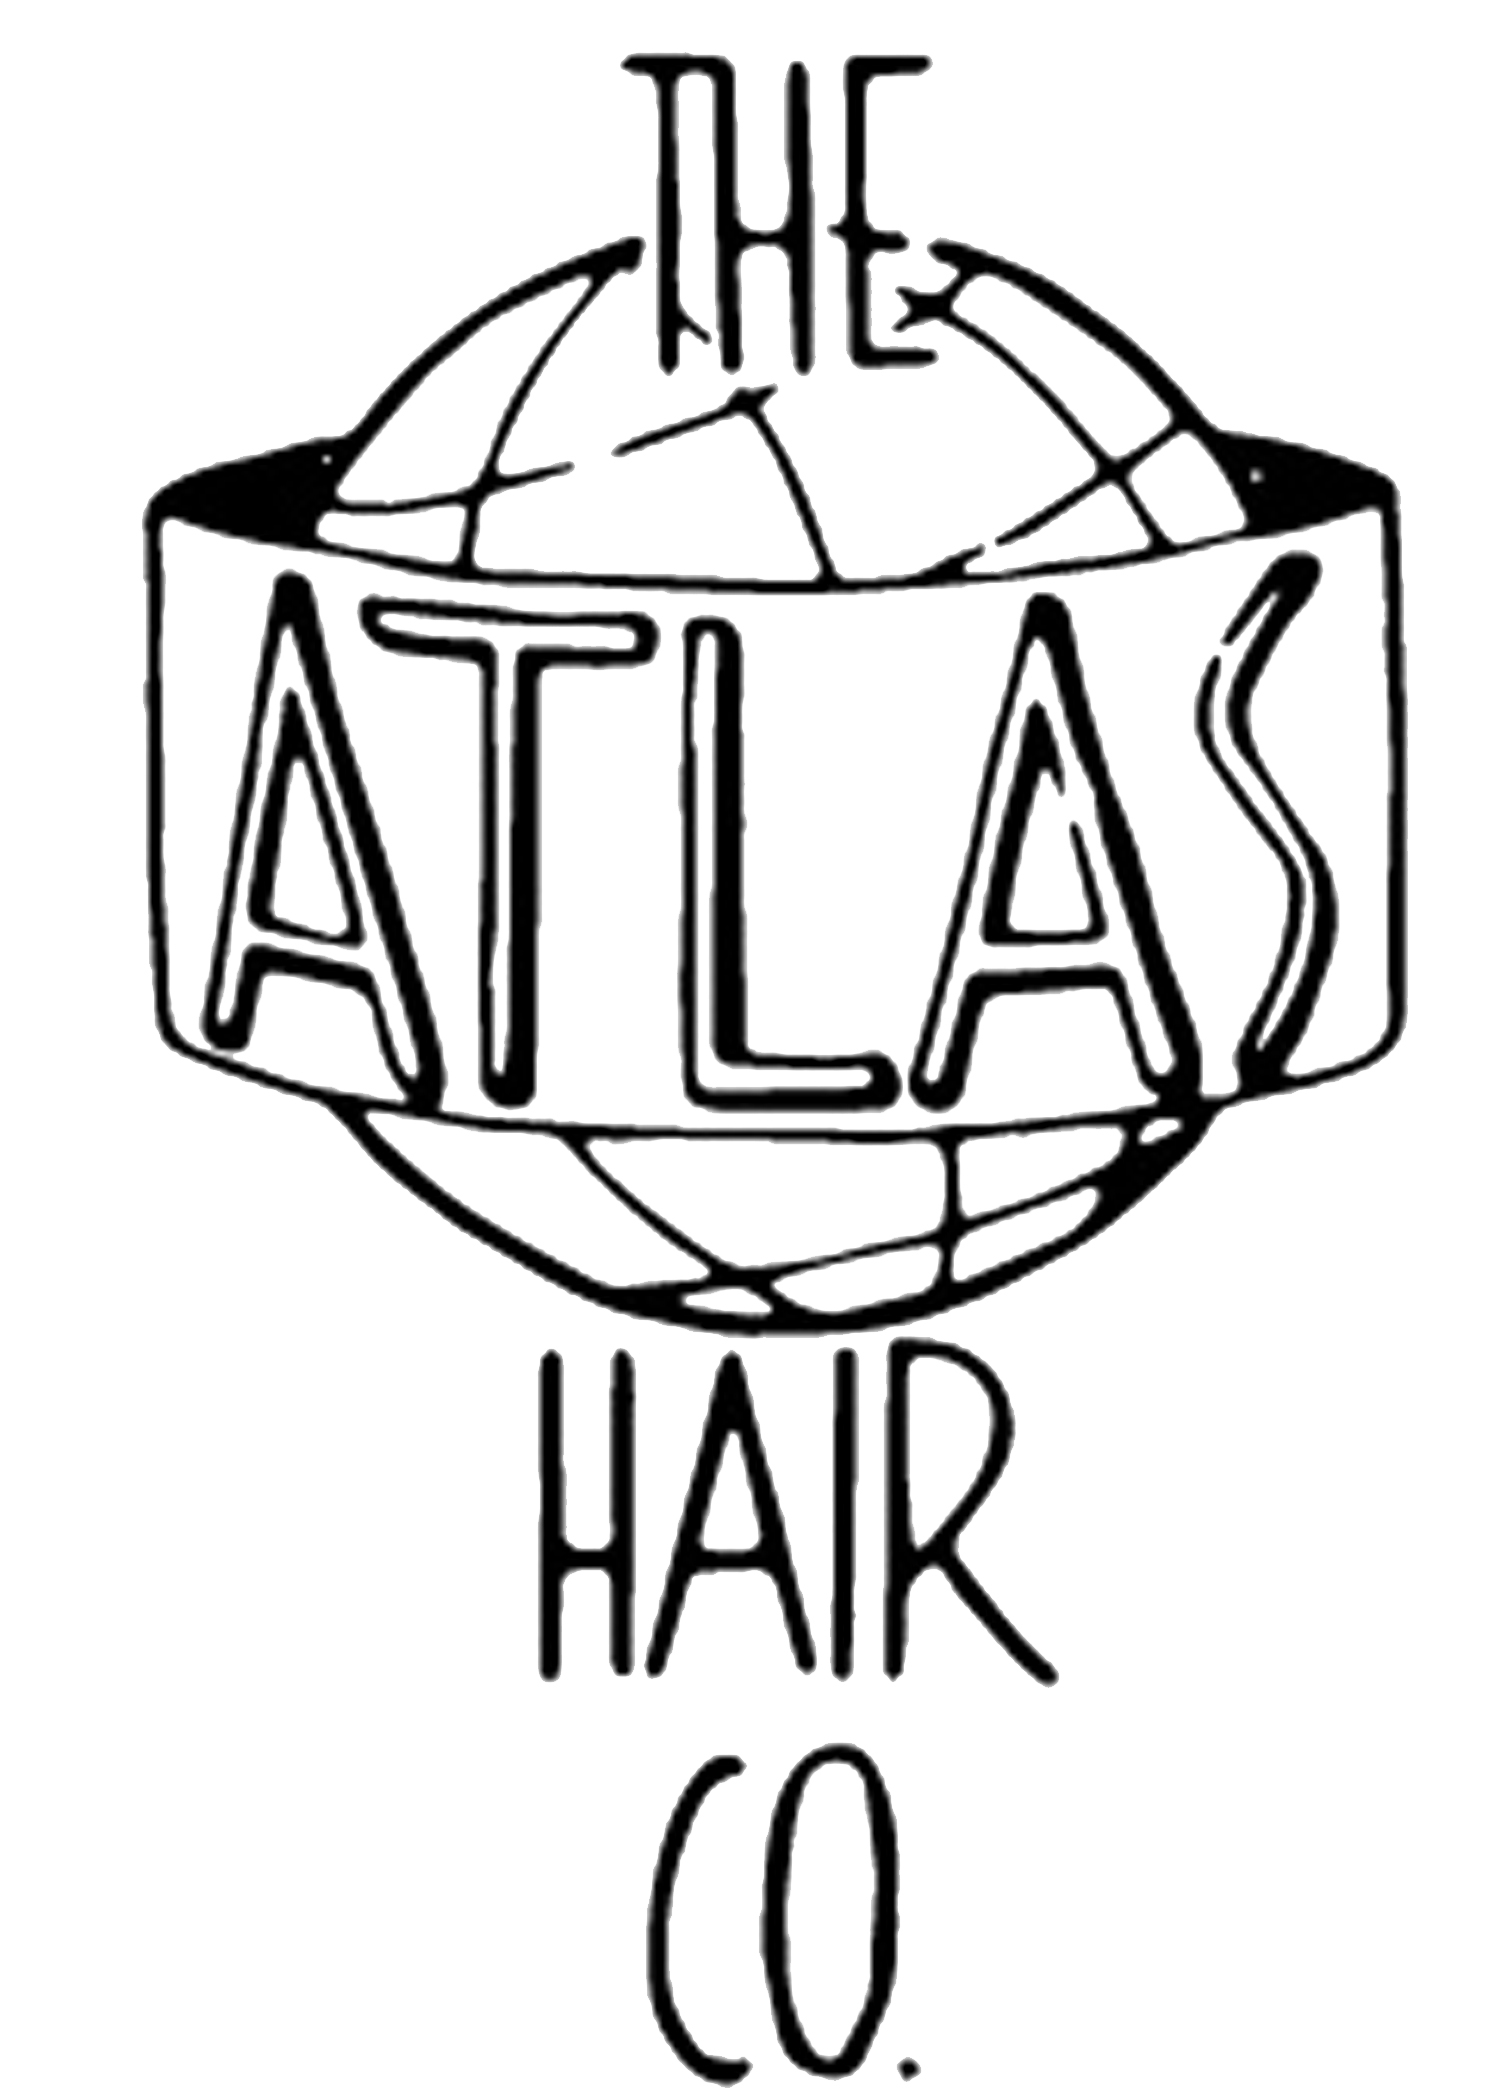 The Atlas Hair Company